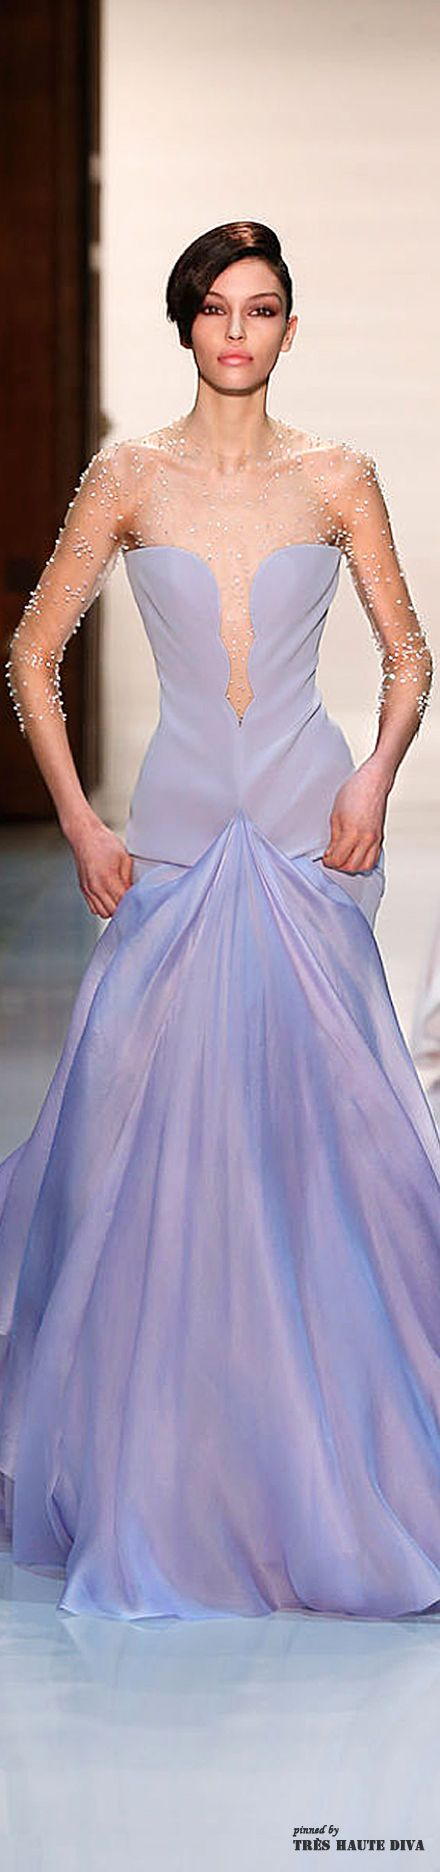 Georges Hobeika Couture ♔